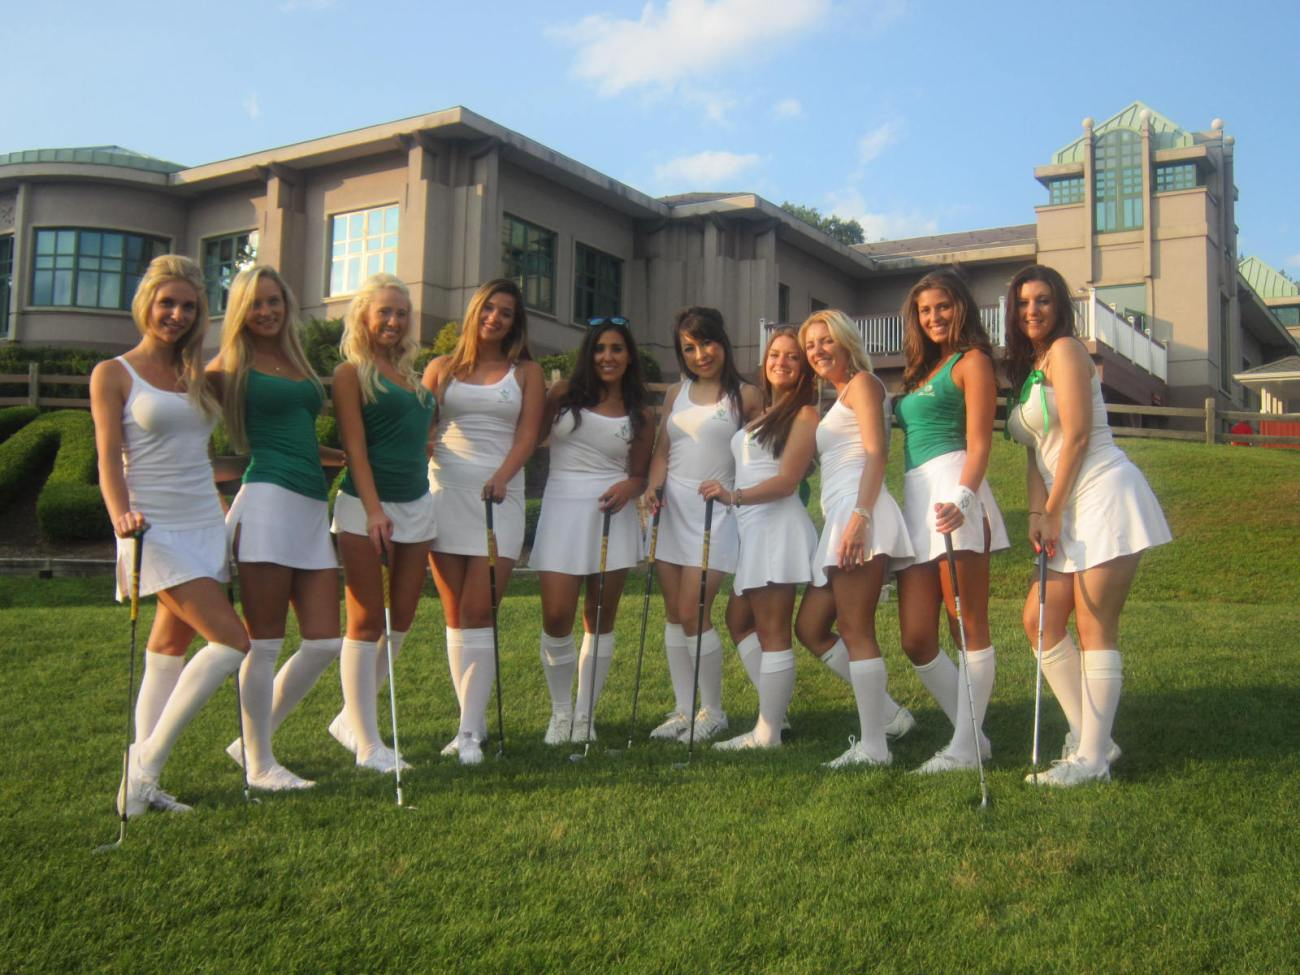 Green Girls Golf Company